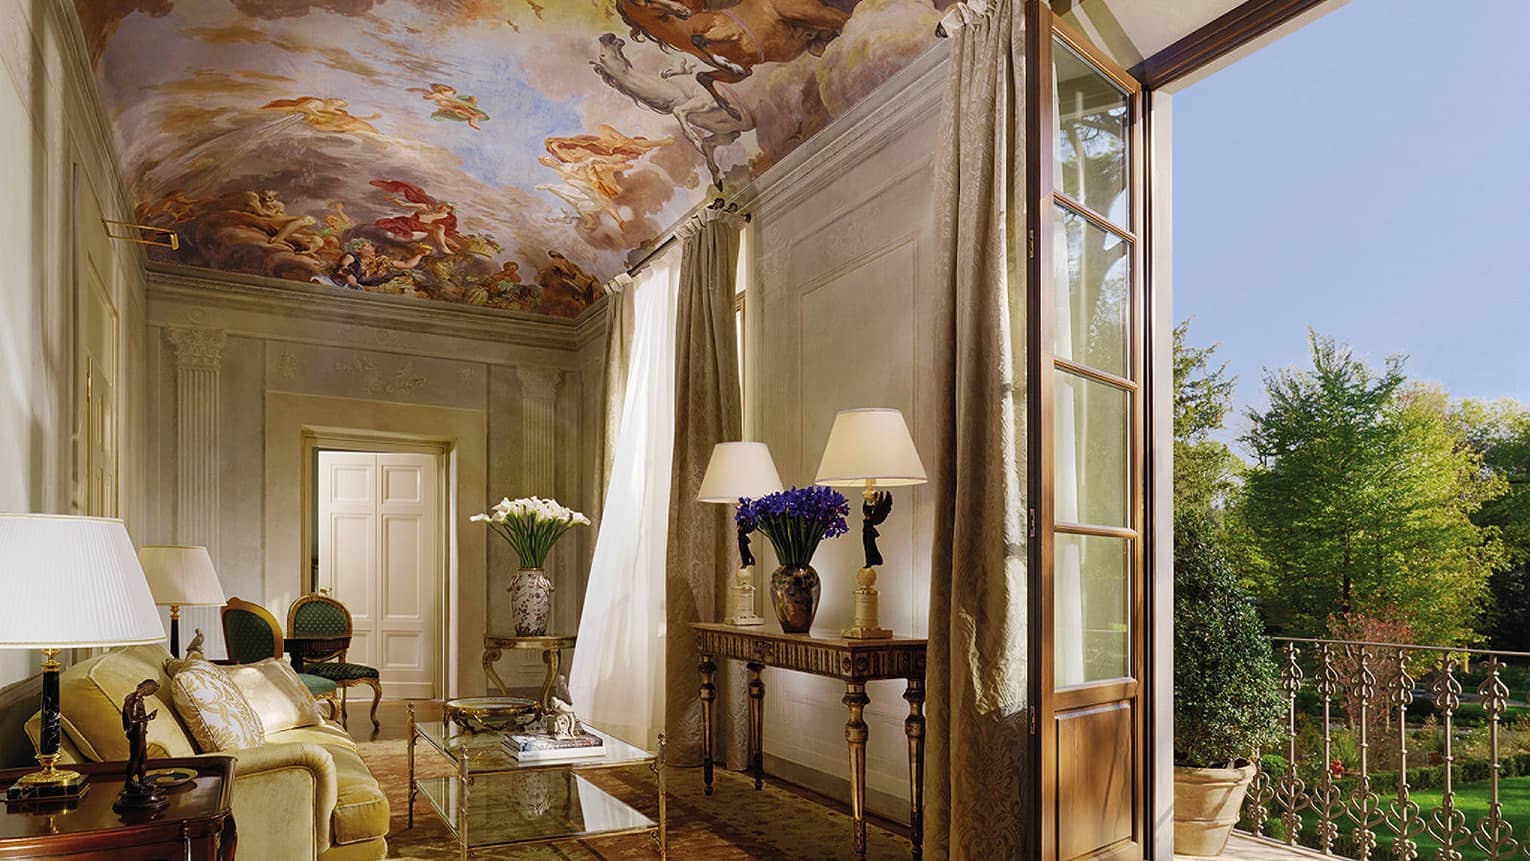 Presidential Suite sitting area under mural panel ceiling, open balcony door